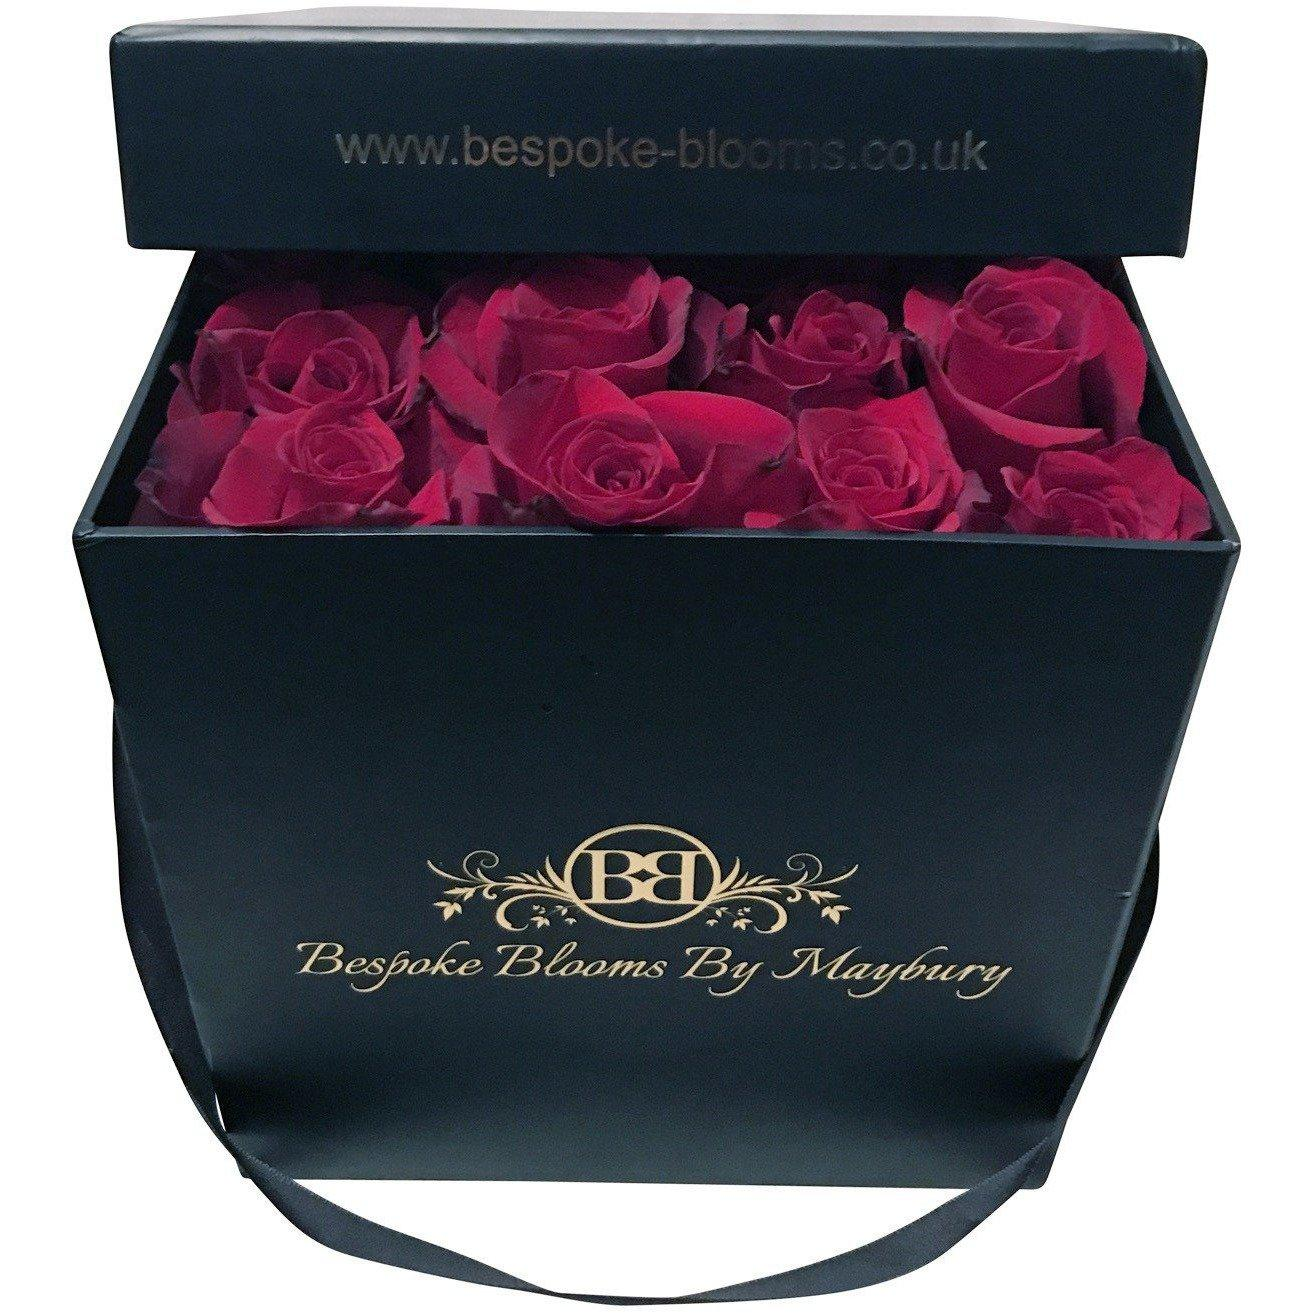 Red Rose Bloom Box - Bespoke Blooms By Maybury